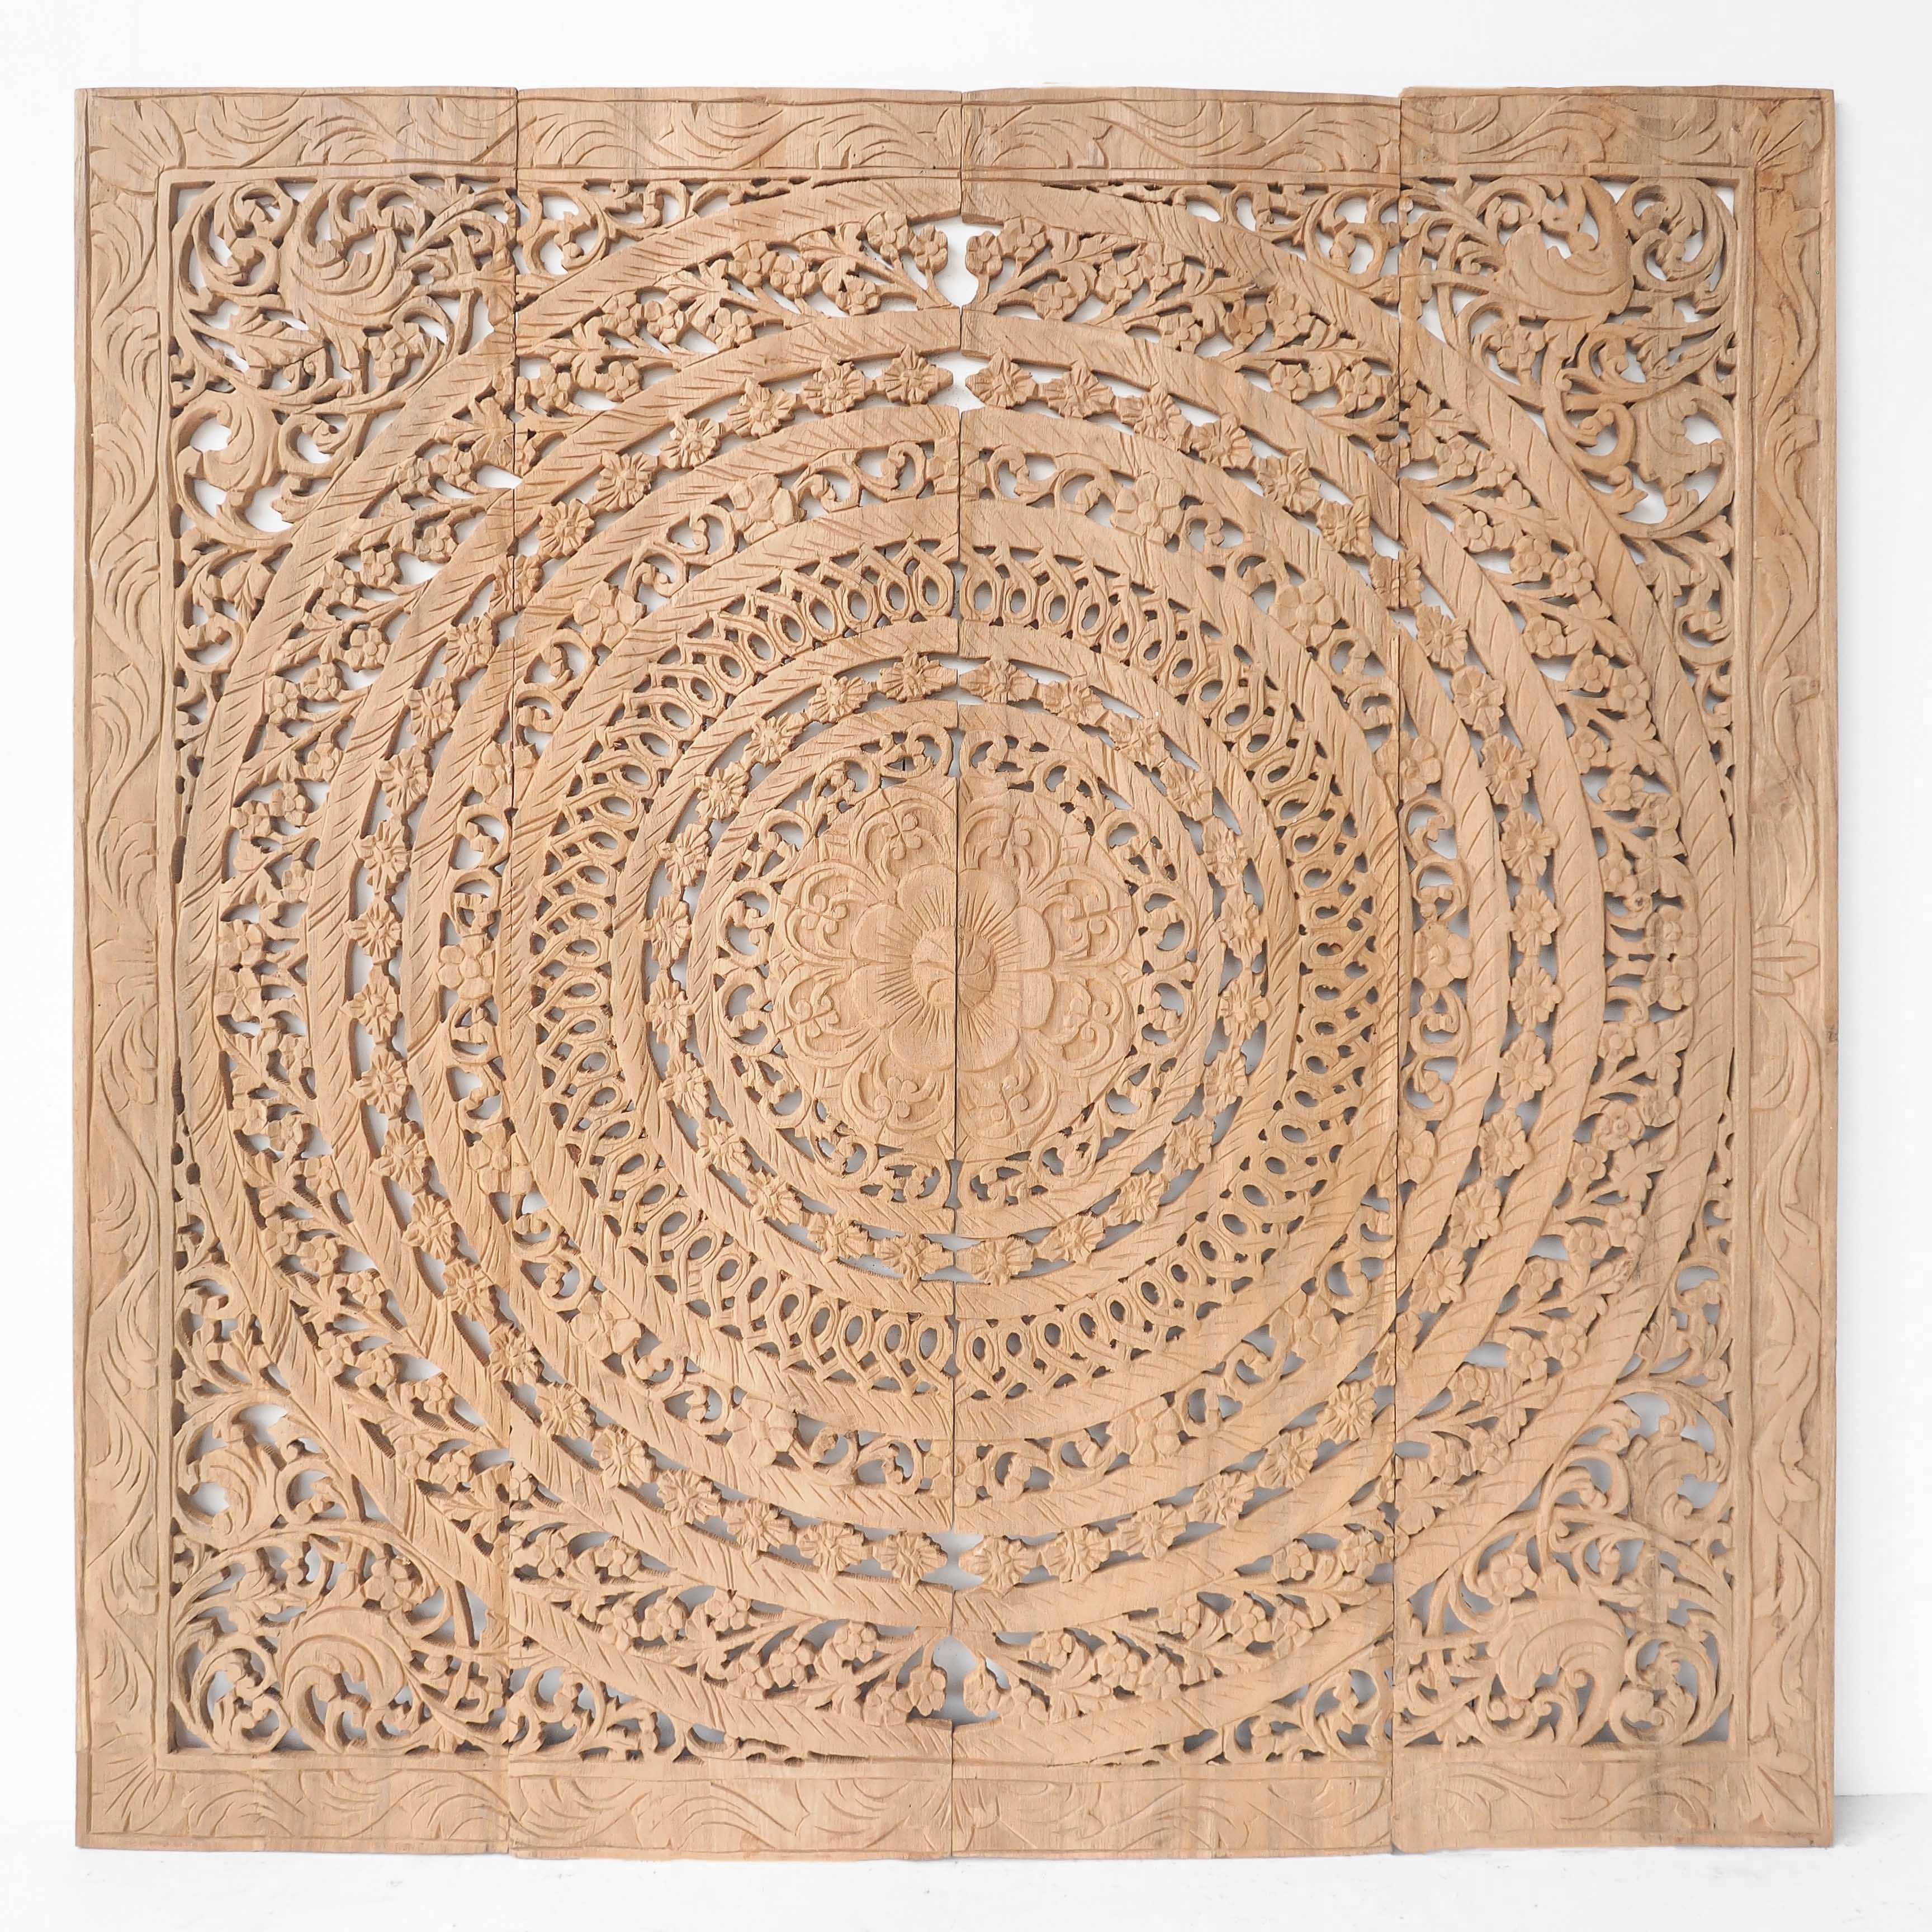 Newest Buy Wood Carving Wall Panel With Moroccan Design Online Inside Wood Carved Wall Art (View 6 of 15)